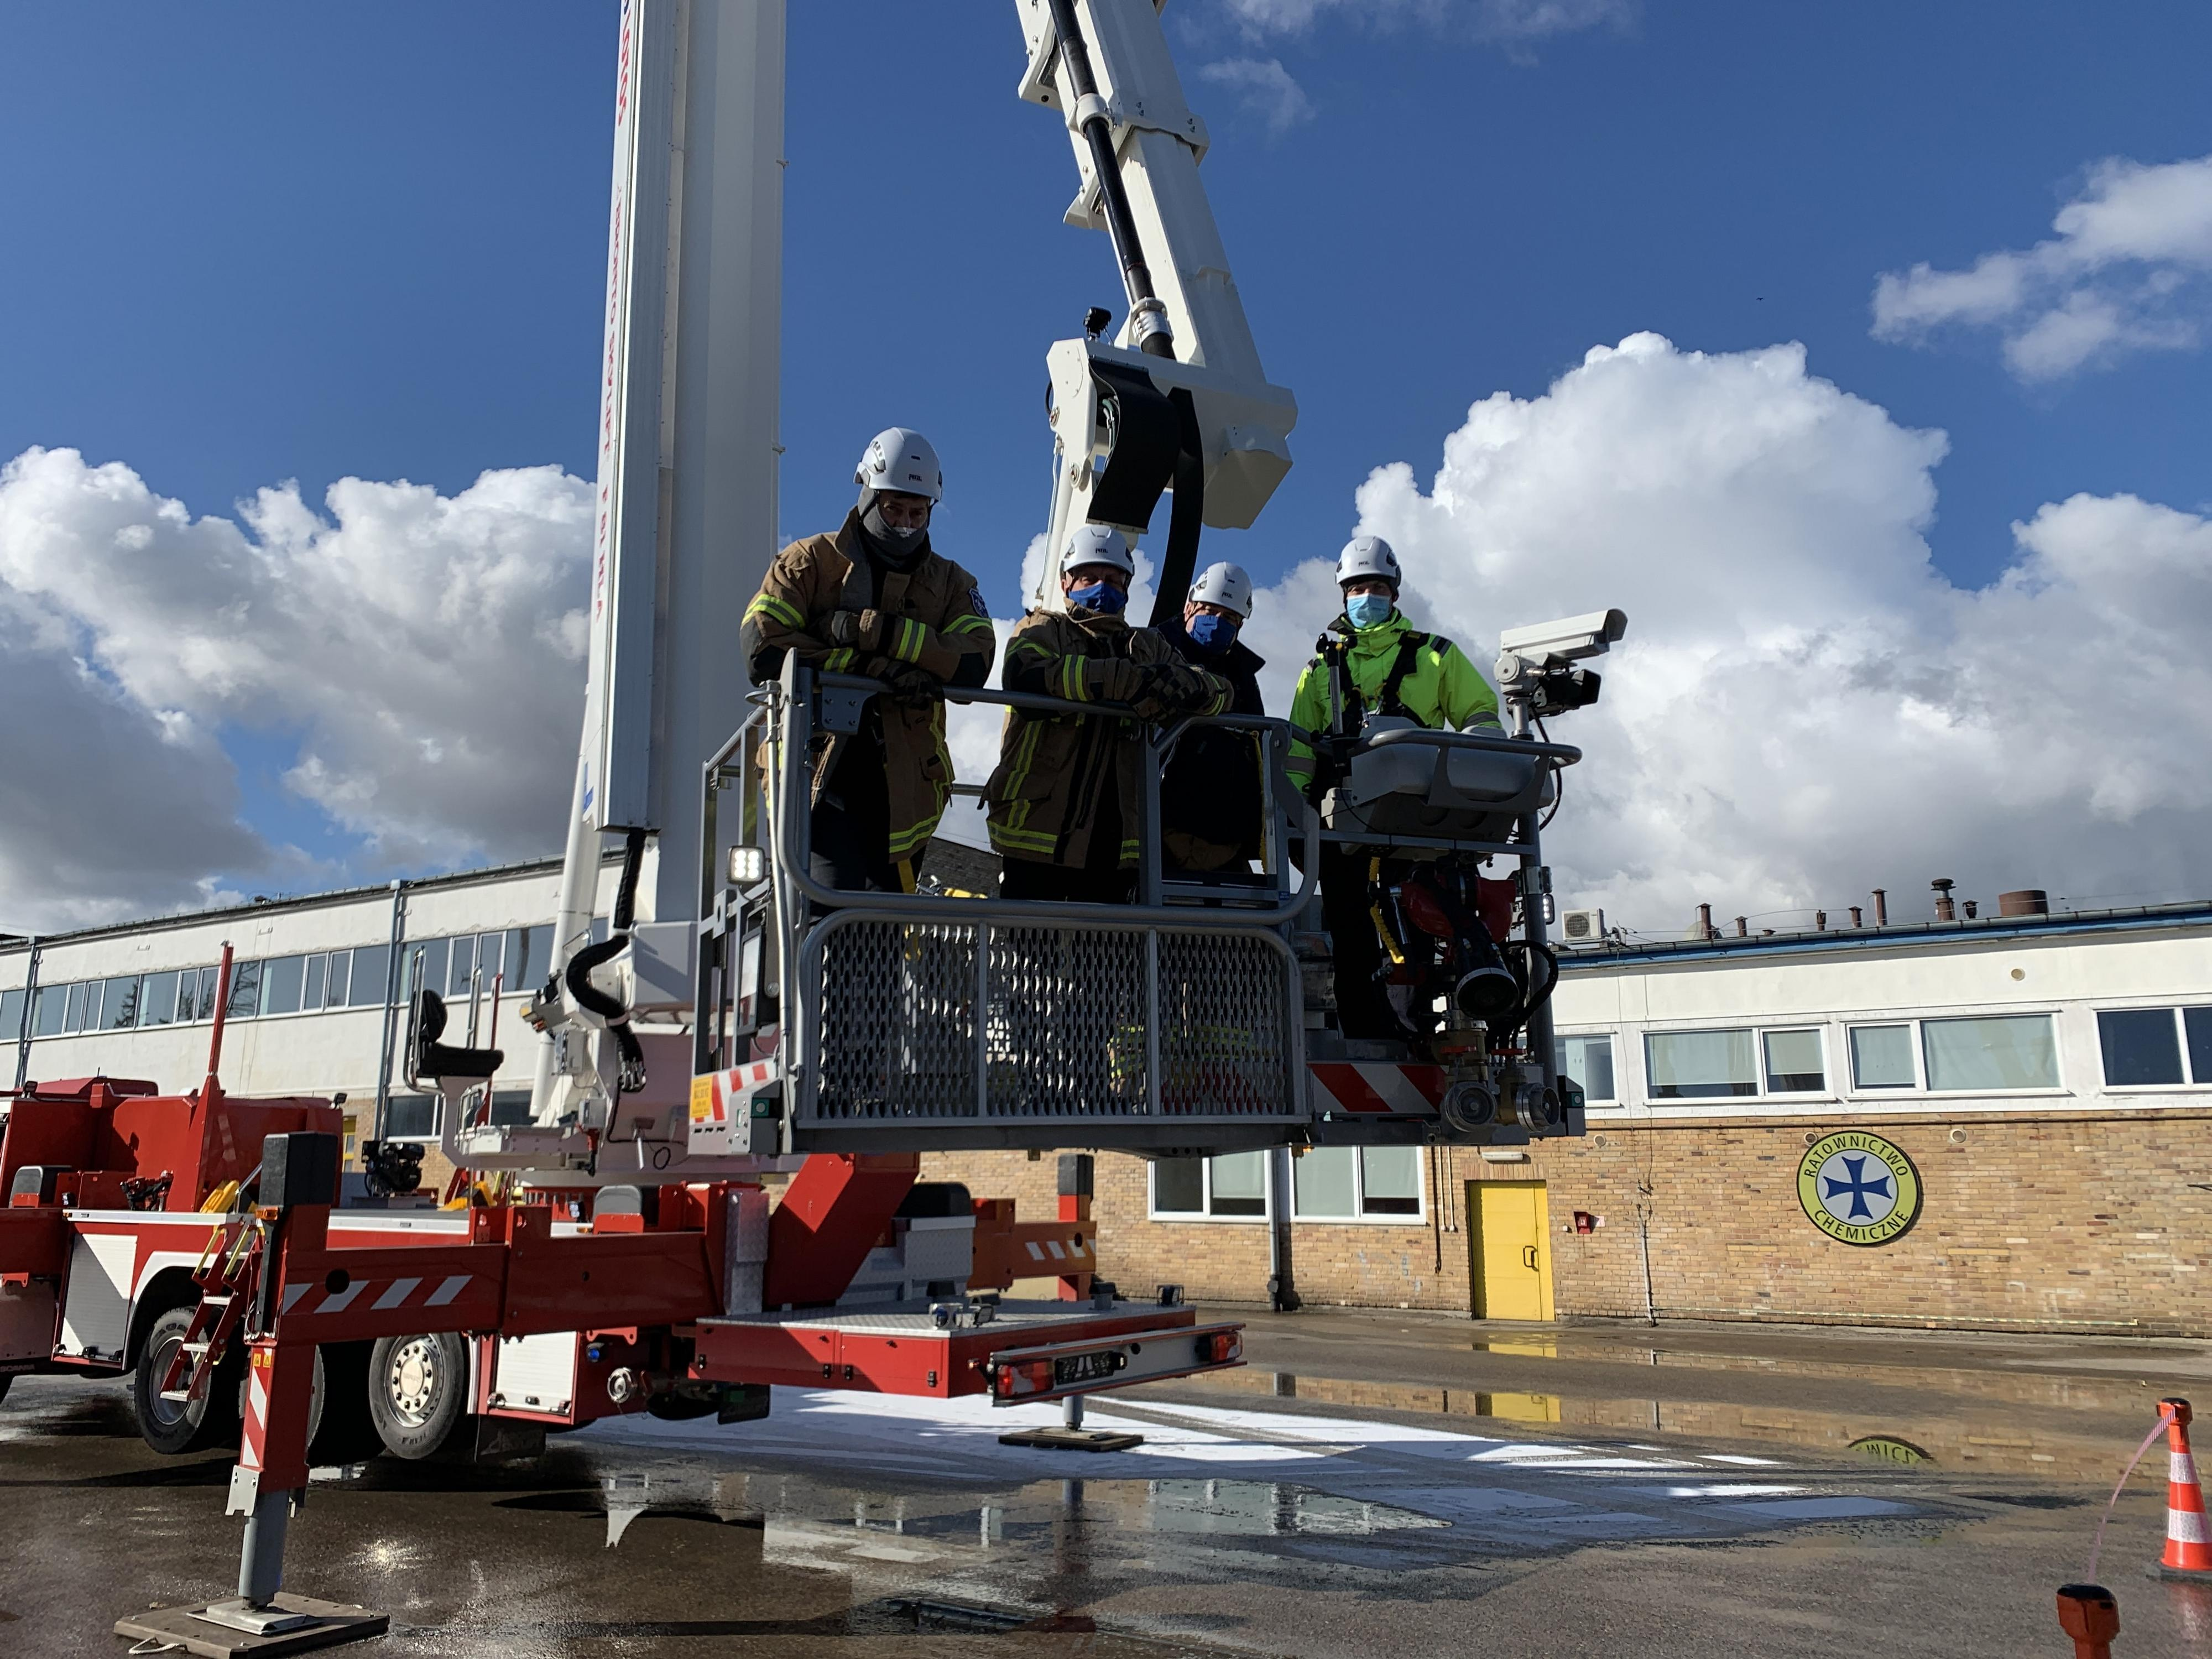 Bronto aerial platform operators being trained at Lotos refinery